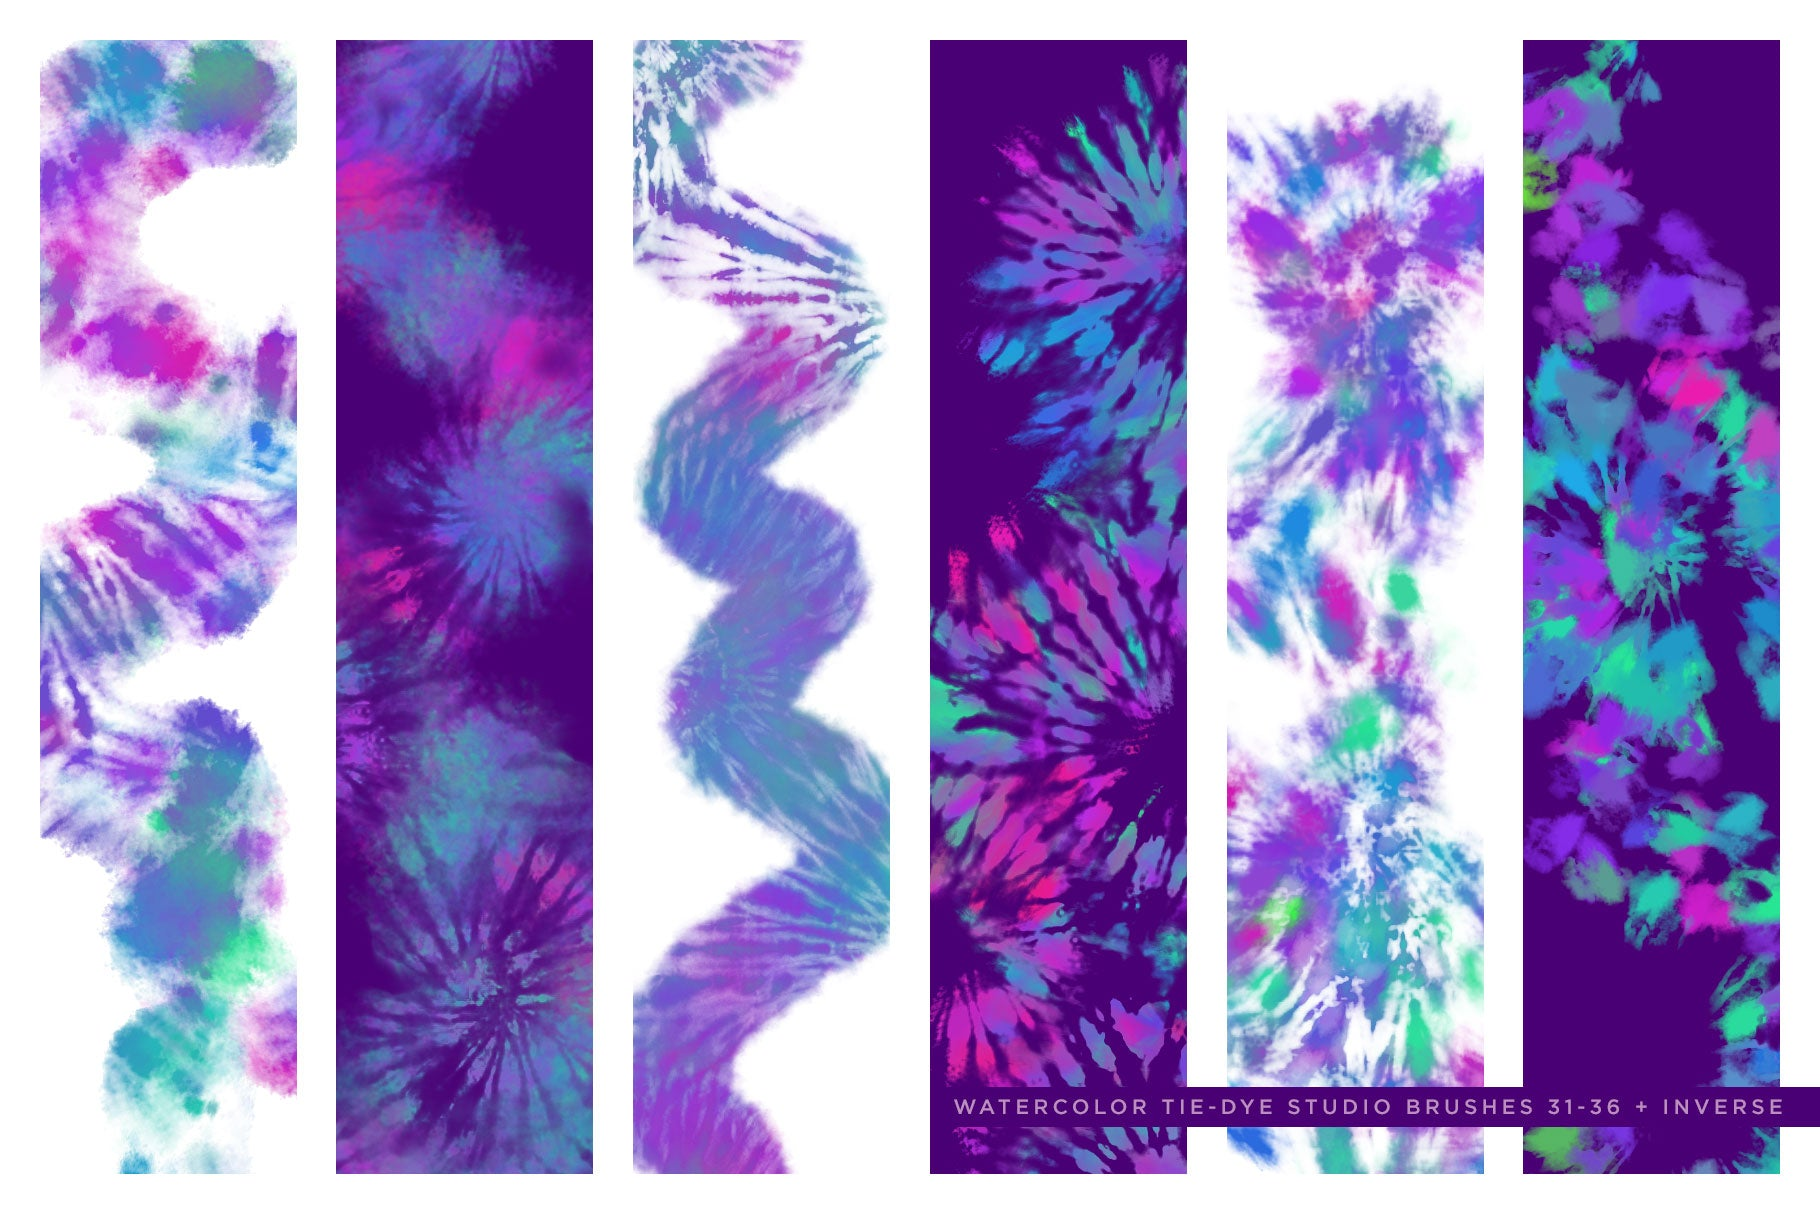 Watercolor Tie-Dye Brush Studio - Instant Digital Tie-Dye Effects - Photoshop Brushes